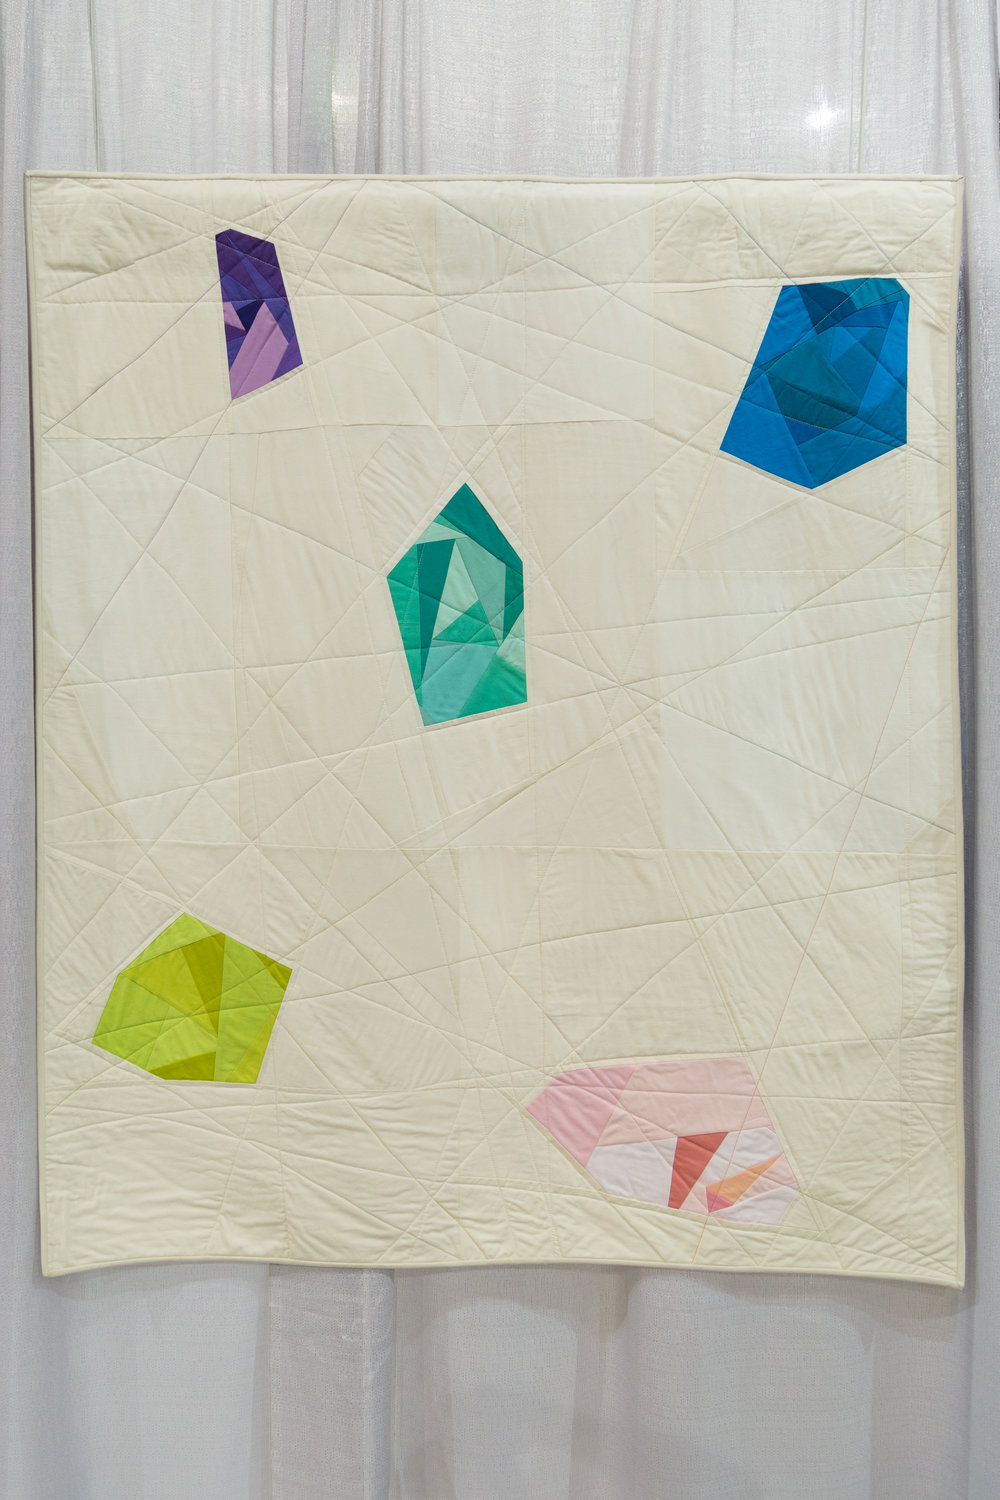 """1st Place: Gemstones  45"""" x 53"""" Pieced and quilted by Lilianna Kehnle Monroe, New York, United States  Individual MQG Member"""